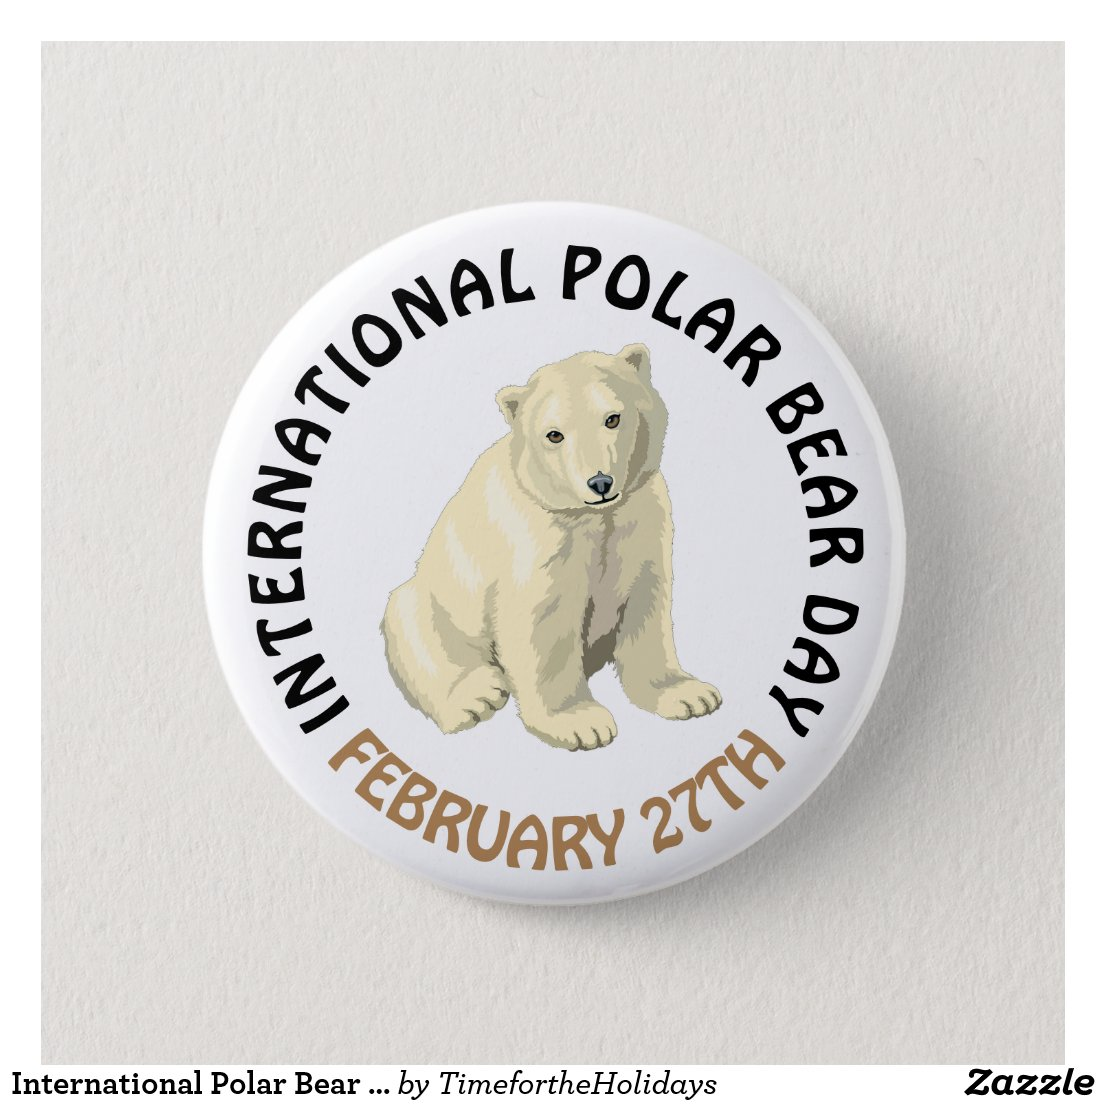 International Polar Bear Day February 27th Holiday